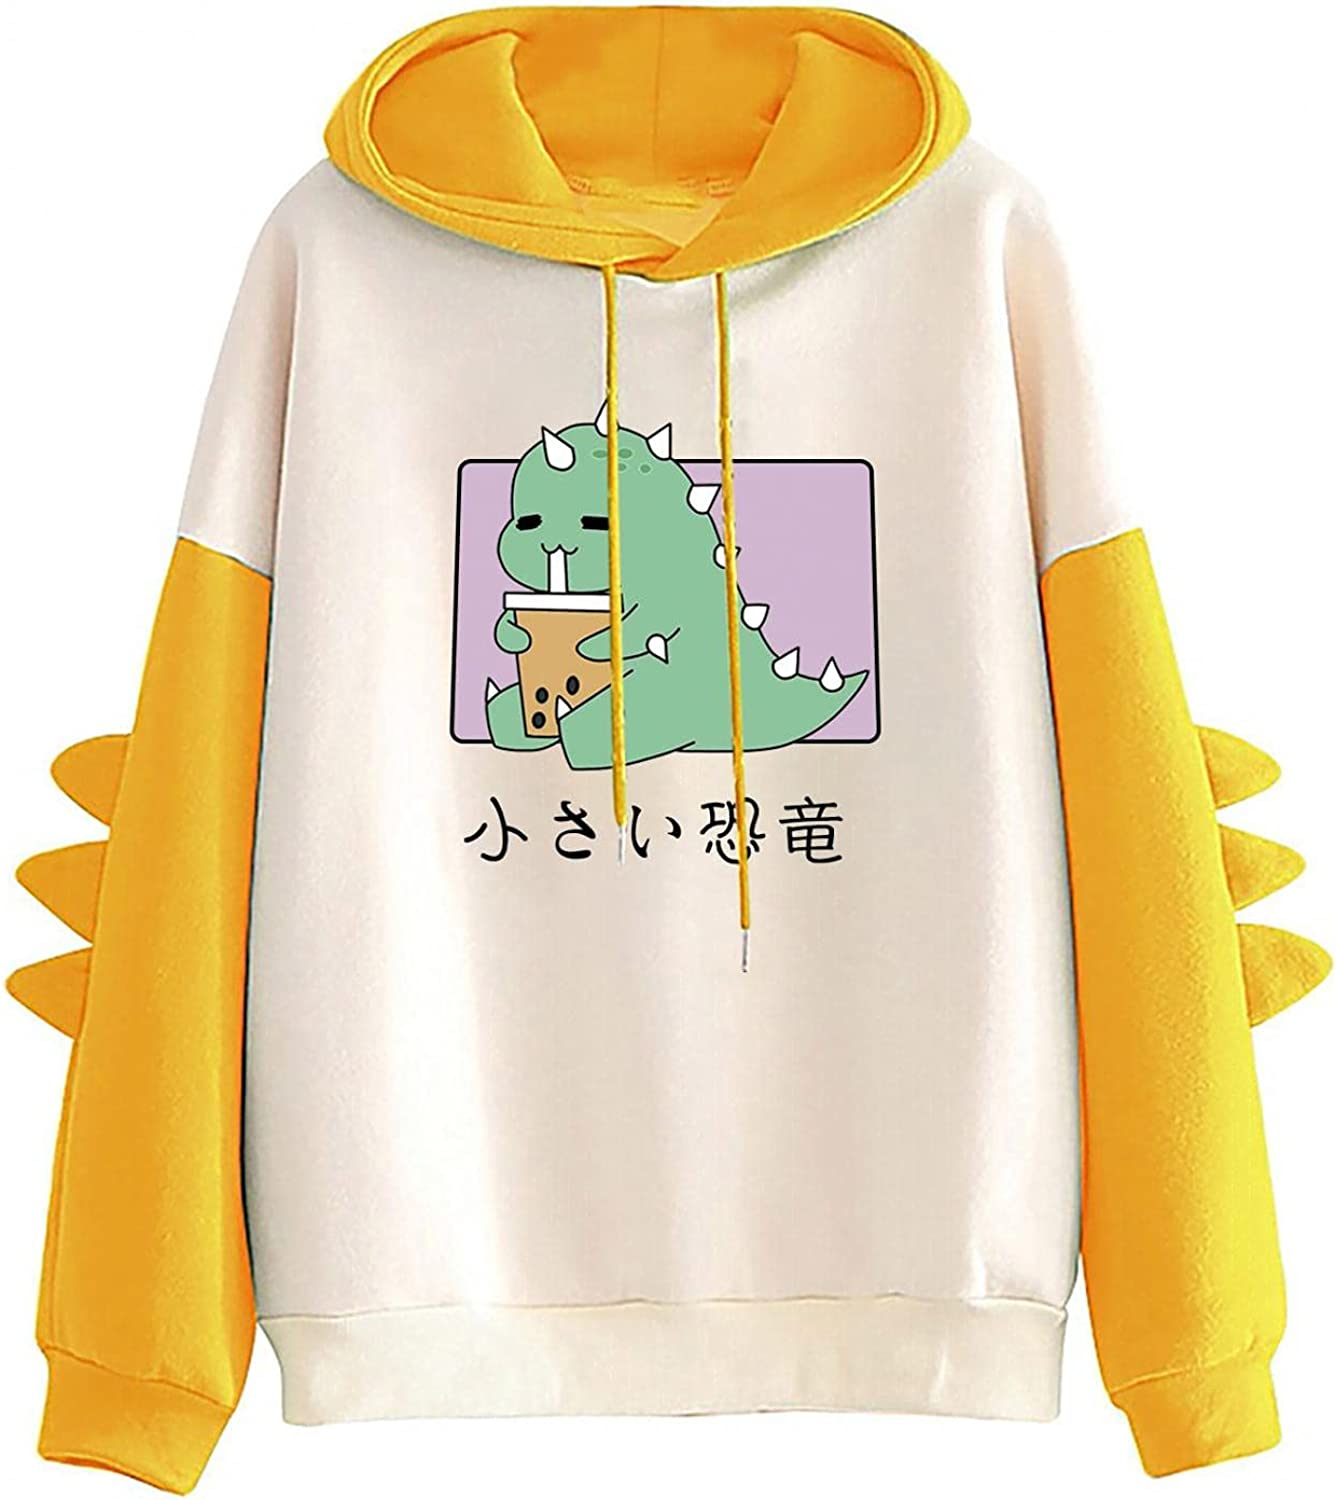 AODONG Hoodie for Womens Fun, Pullover Women's Casual Dinosaur Printed Hooded Long Sleeves Tunic Styling Tops Blouse Shirts